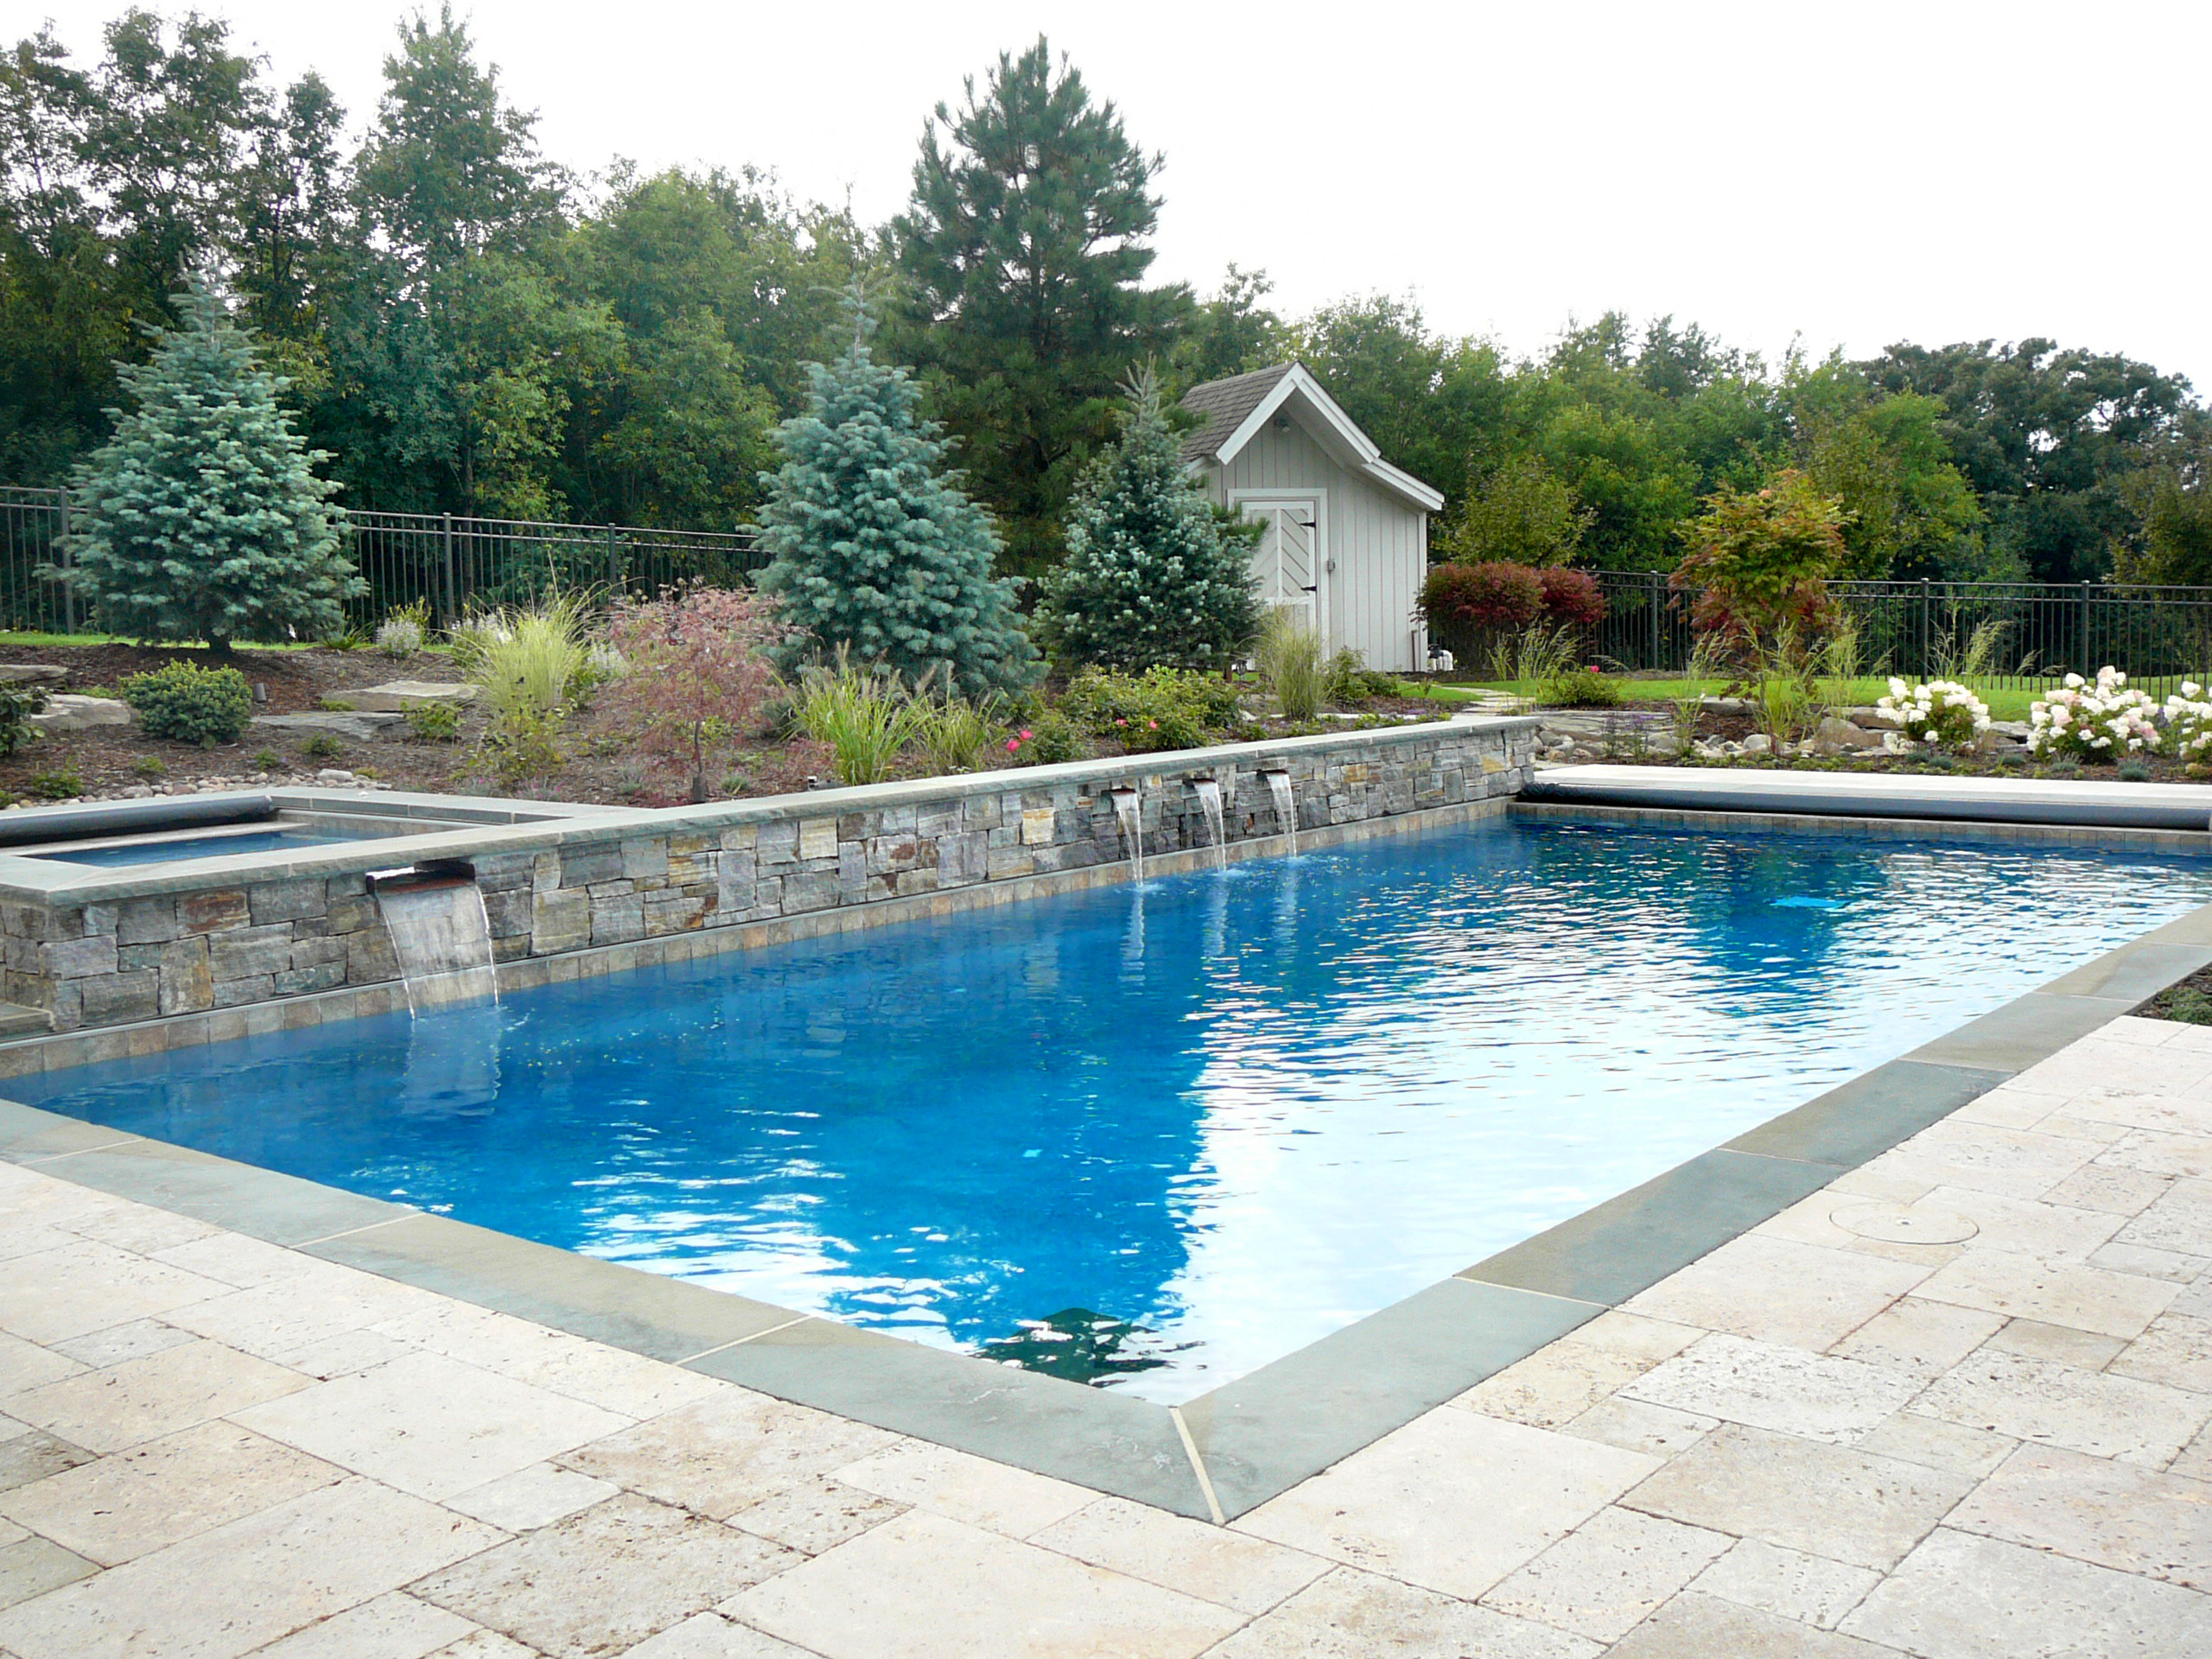 A combination of natural vintage travertine paver stone patio and full range thermal blue stone lining edge of pool, and an American granite veneer wall encasing 4 waterfalls